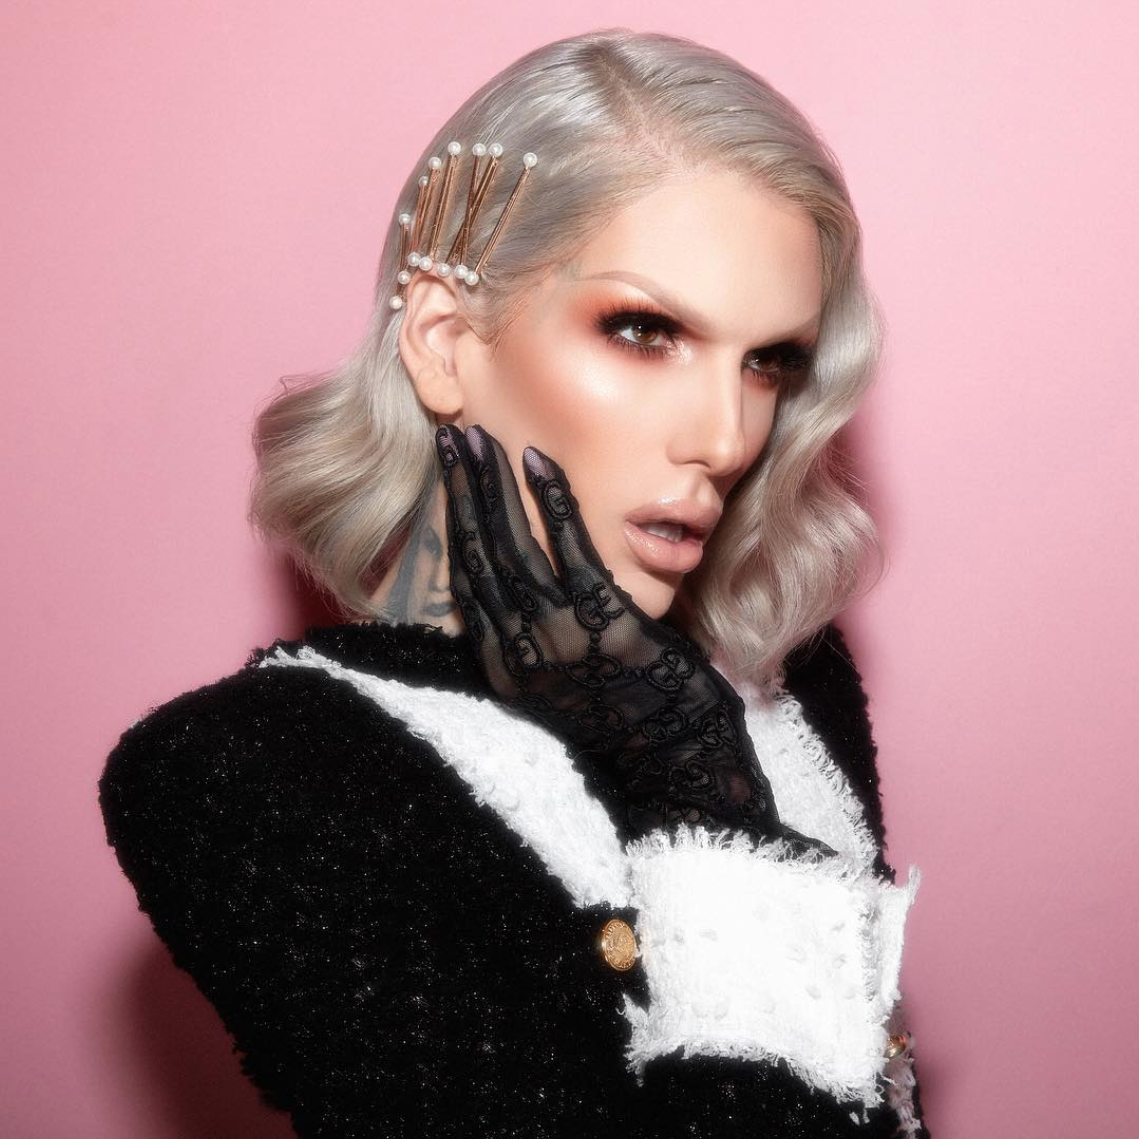 Burlington Releases a Statement After Jeffree Star Accuses Them of Selling Stolen Makeup